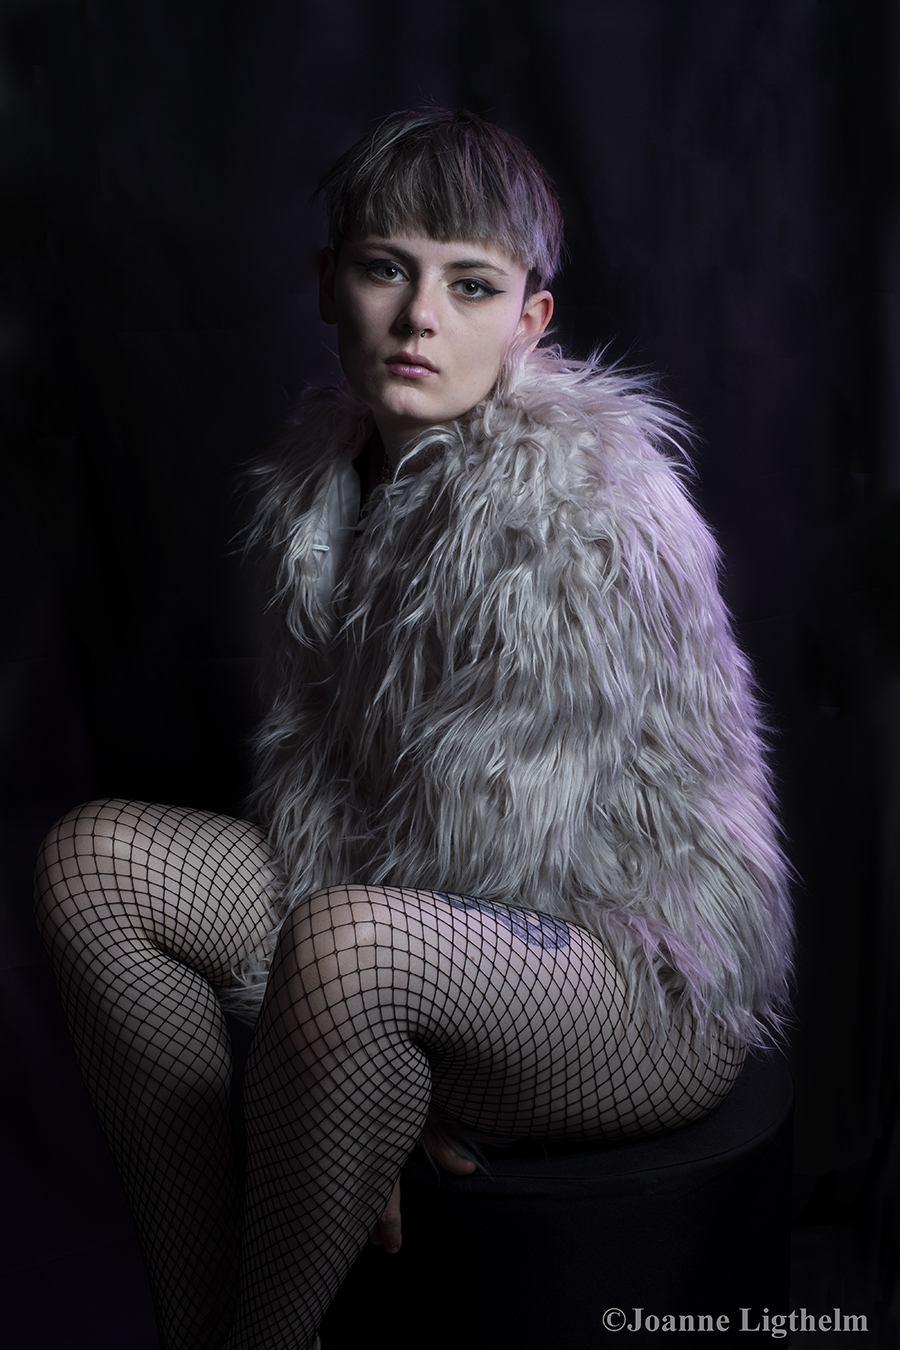 Photography by joanne Ligthelm, Model Jaq / Uploaded 1st August 2019 @ 11:51 AM